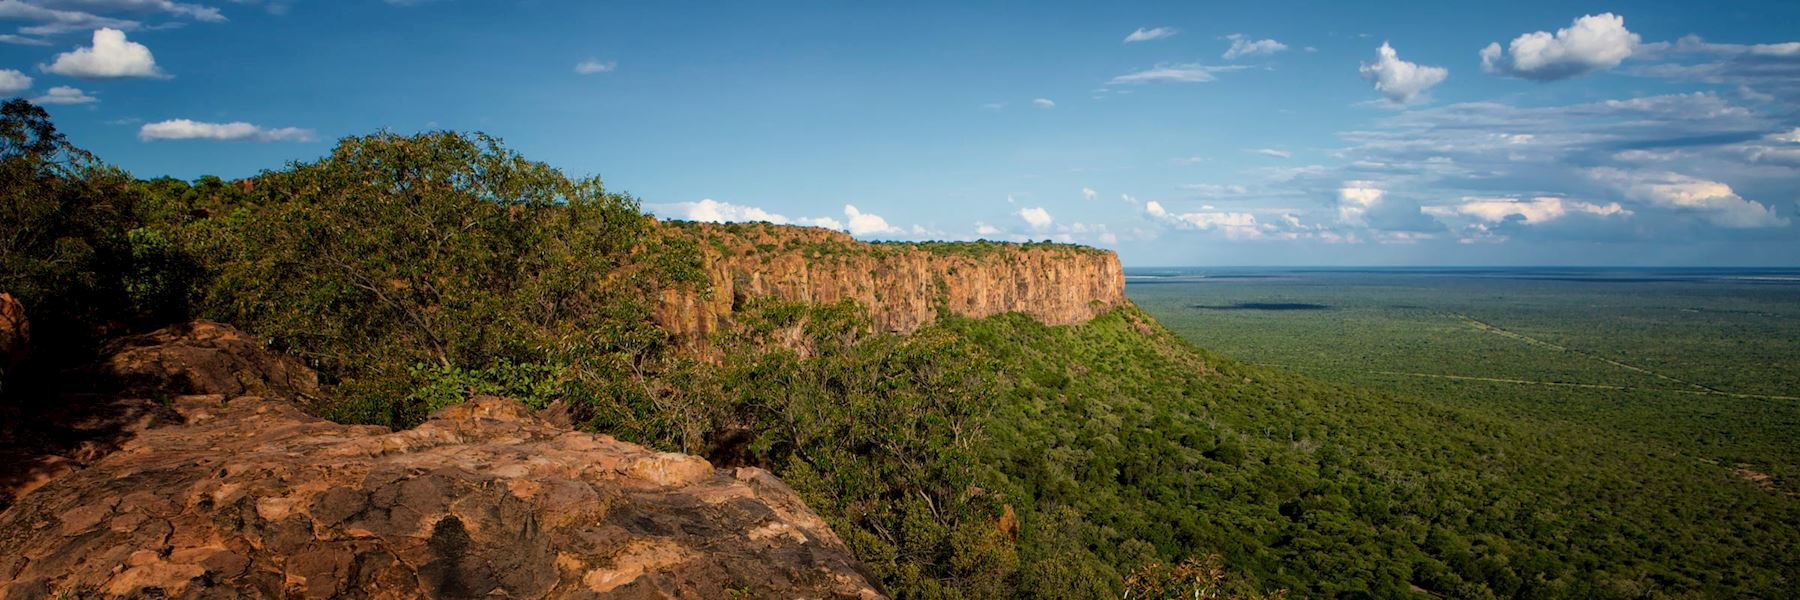 Visit the Waterberg, South Africa